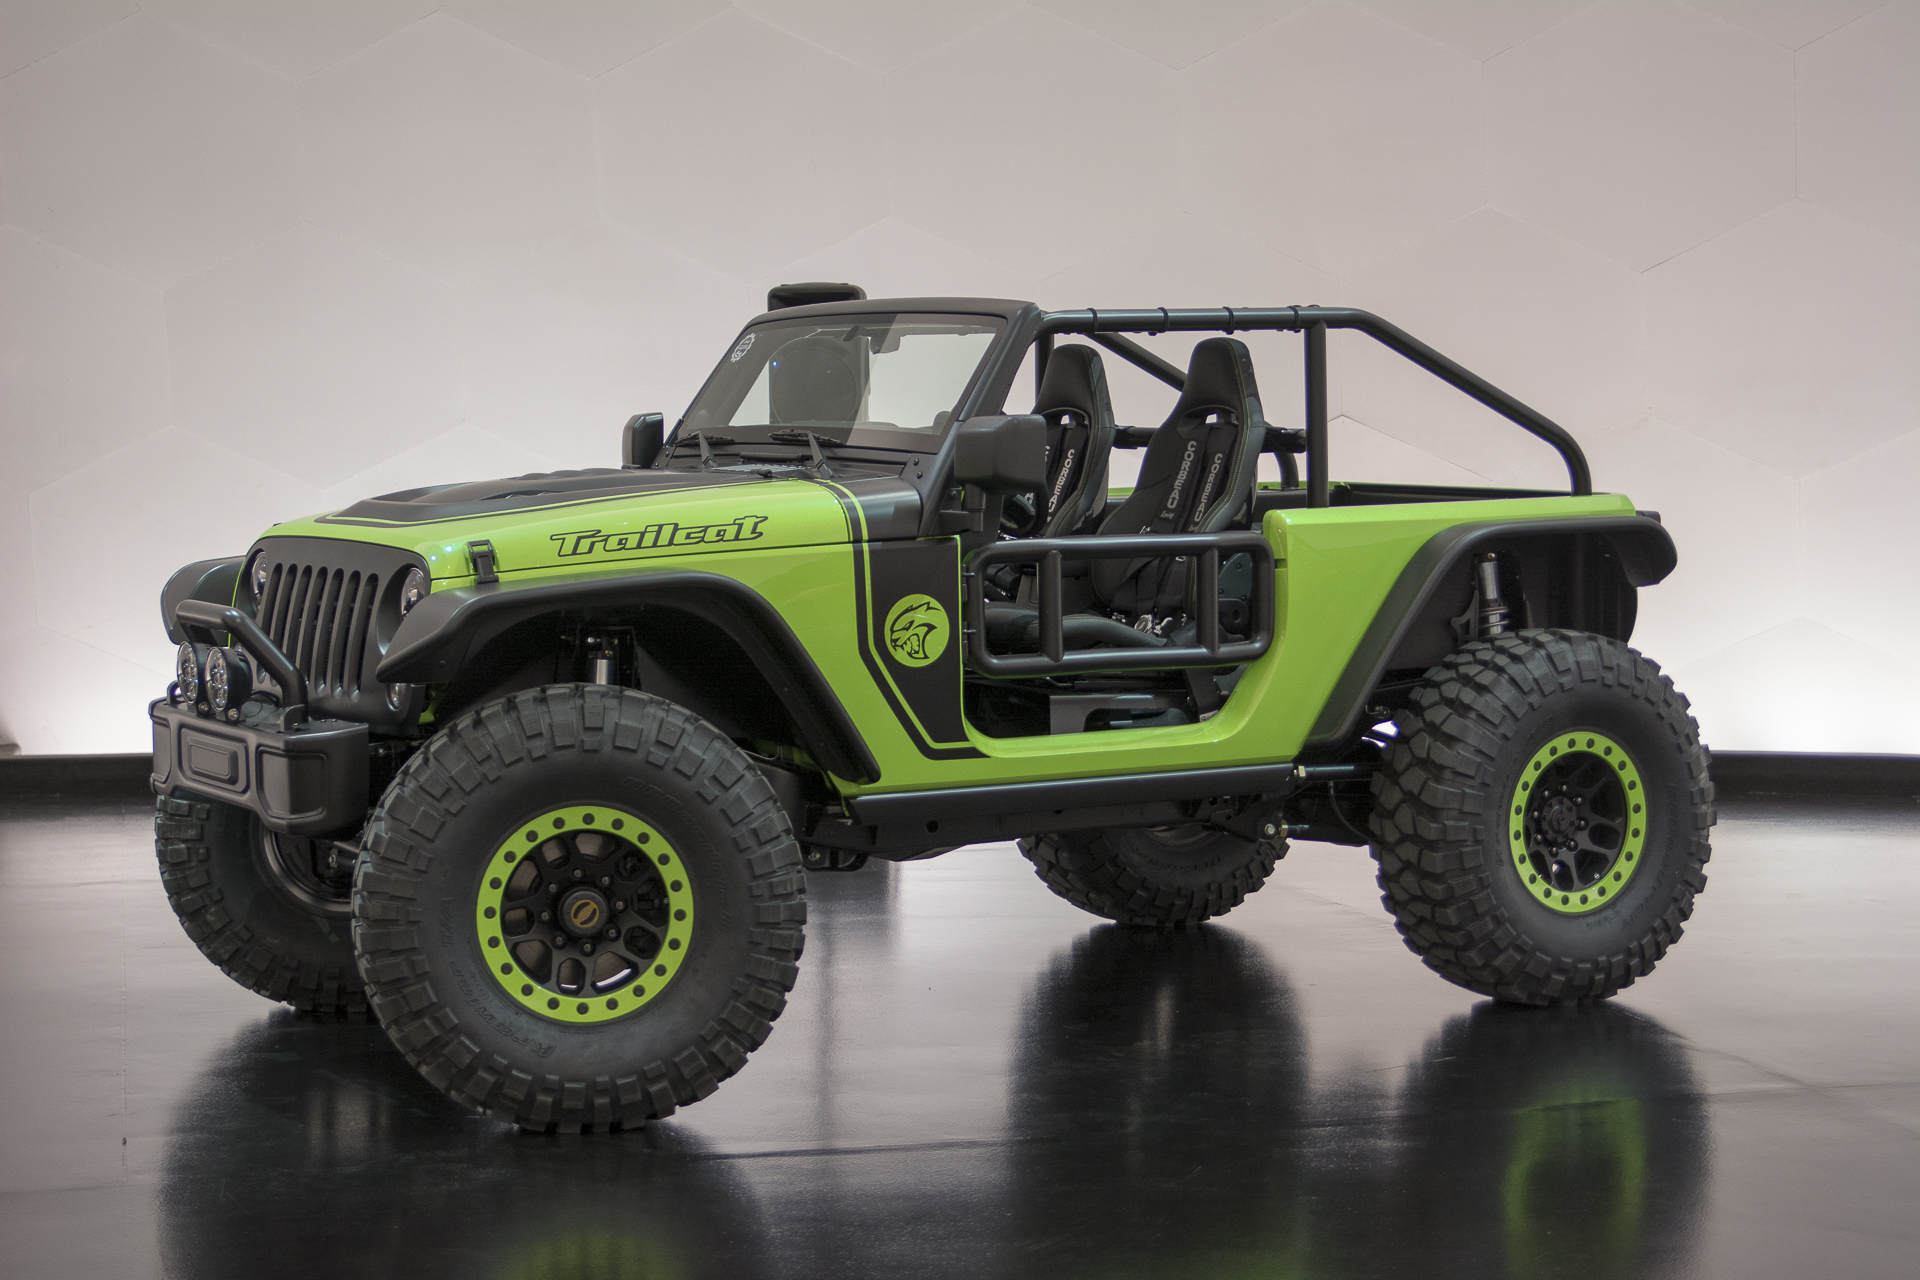 Jeep Wrangler Trailcat Concept 2016 - Dark-Cars Wallpapers